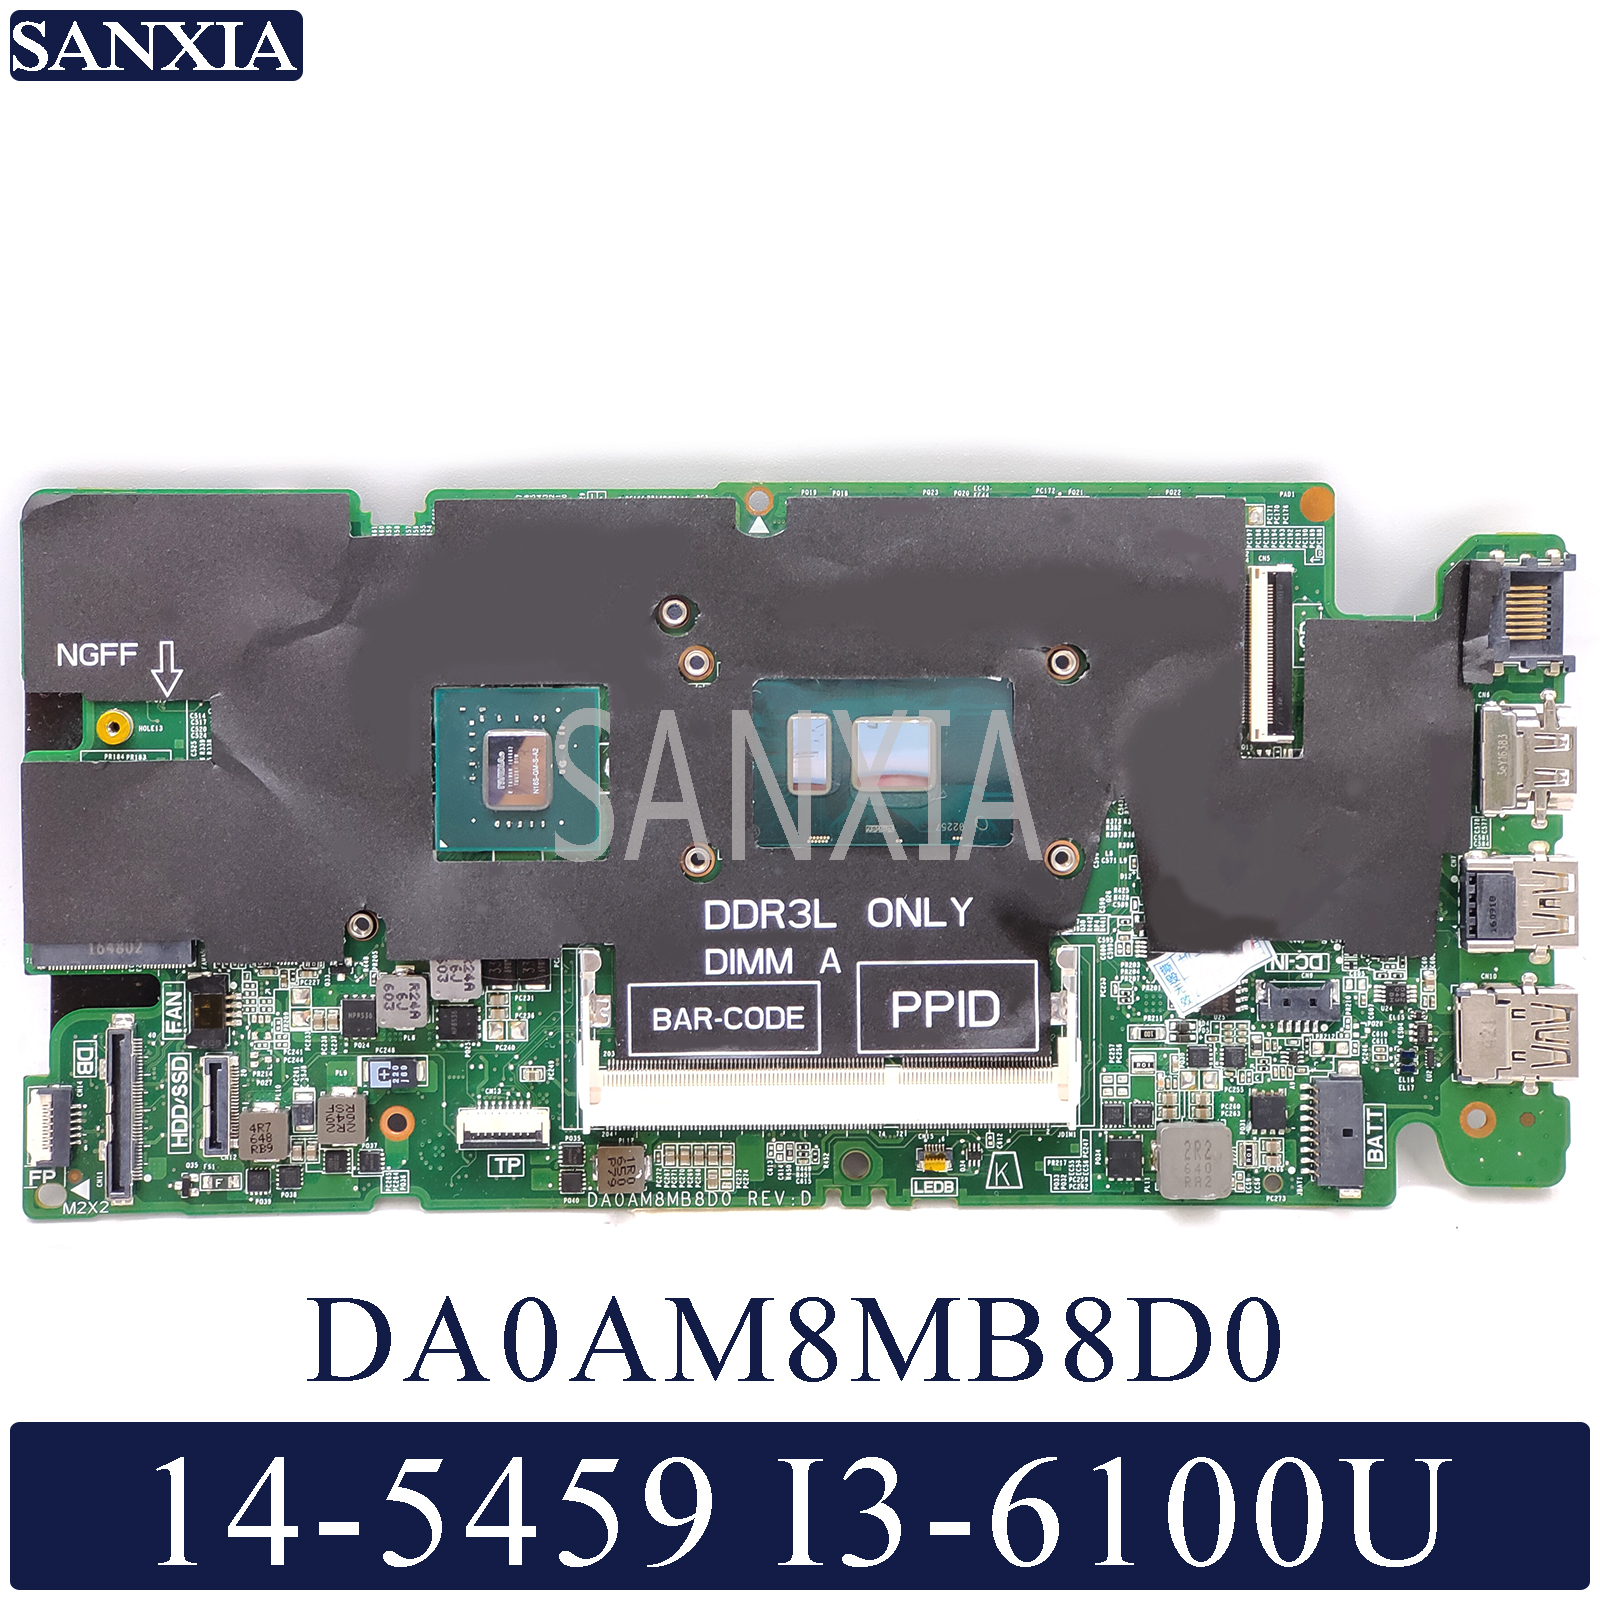 KEFU DA0AM8MB8D0 Laptop Motherboard For Dell Vostro 14-5459 Original Mainboard I3-6100U GT930M